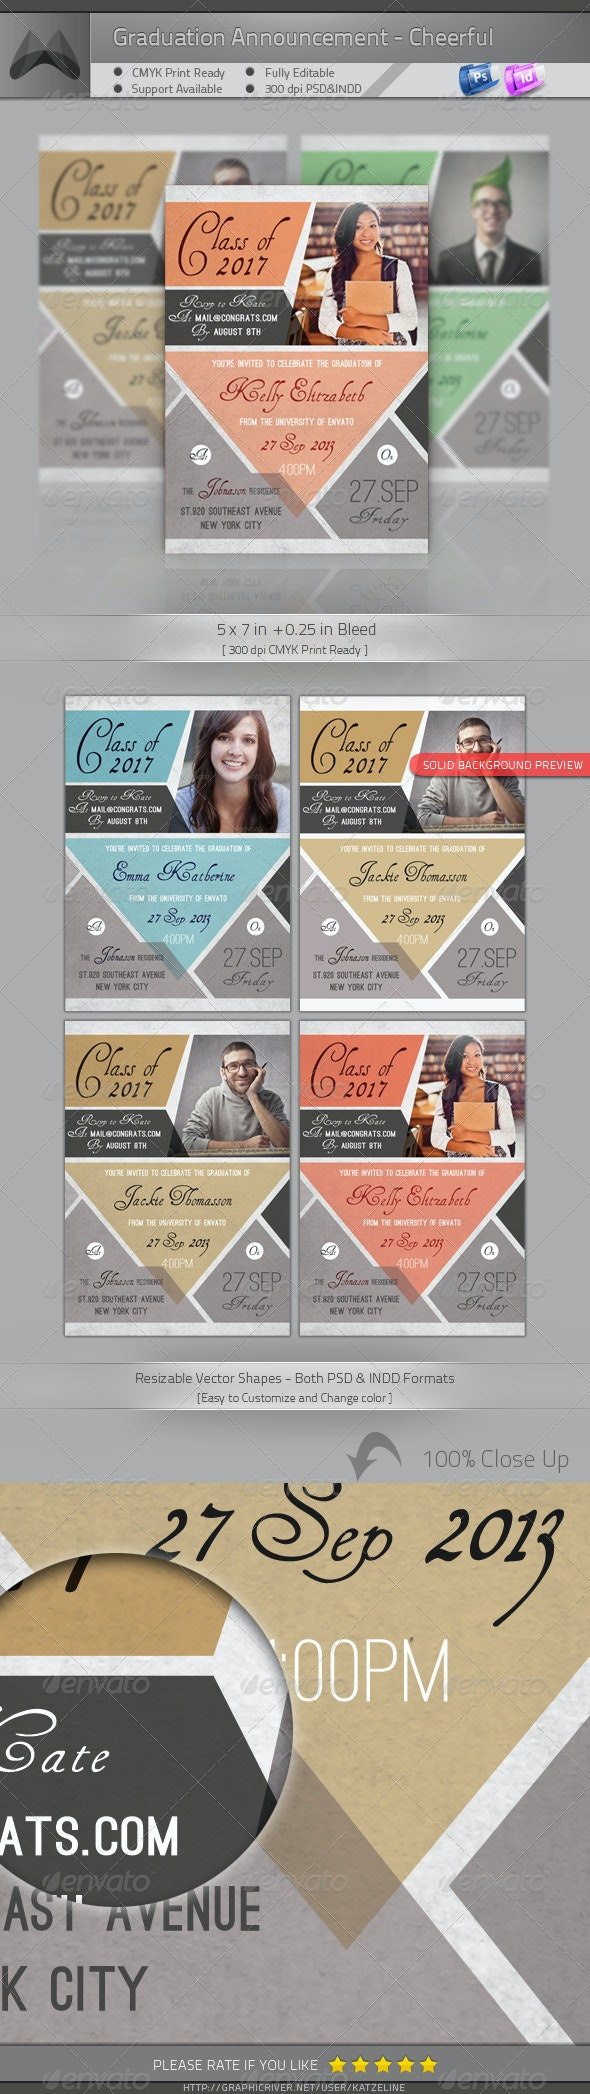 Graduation Announcement - Cheerful - Invitations Cards & Invites